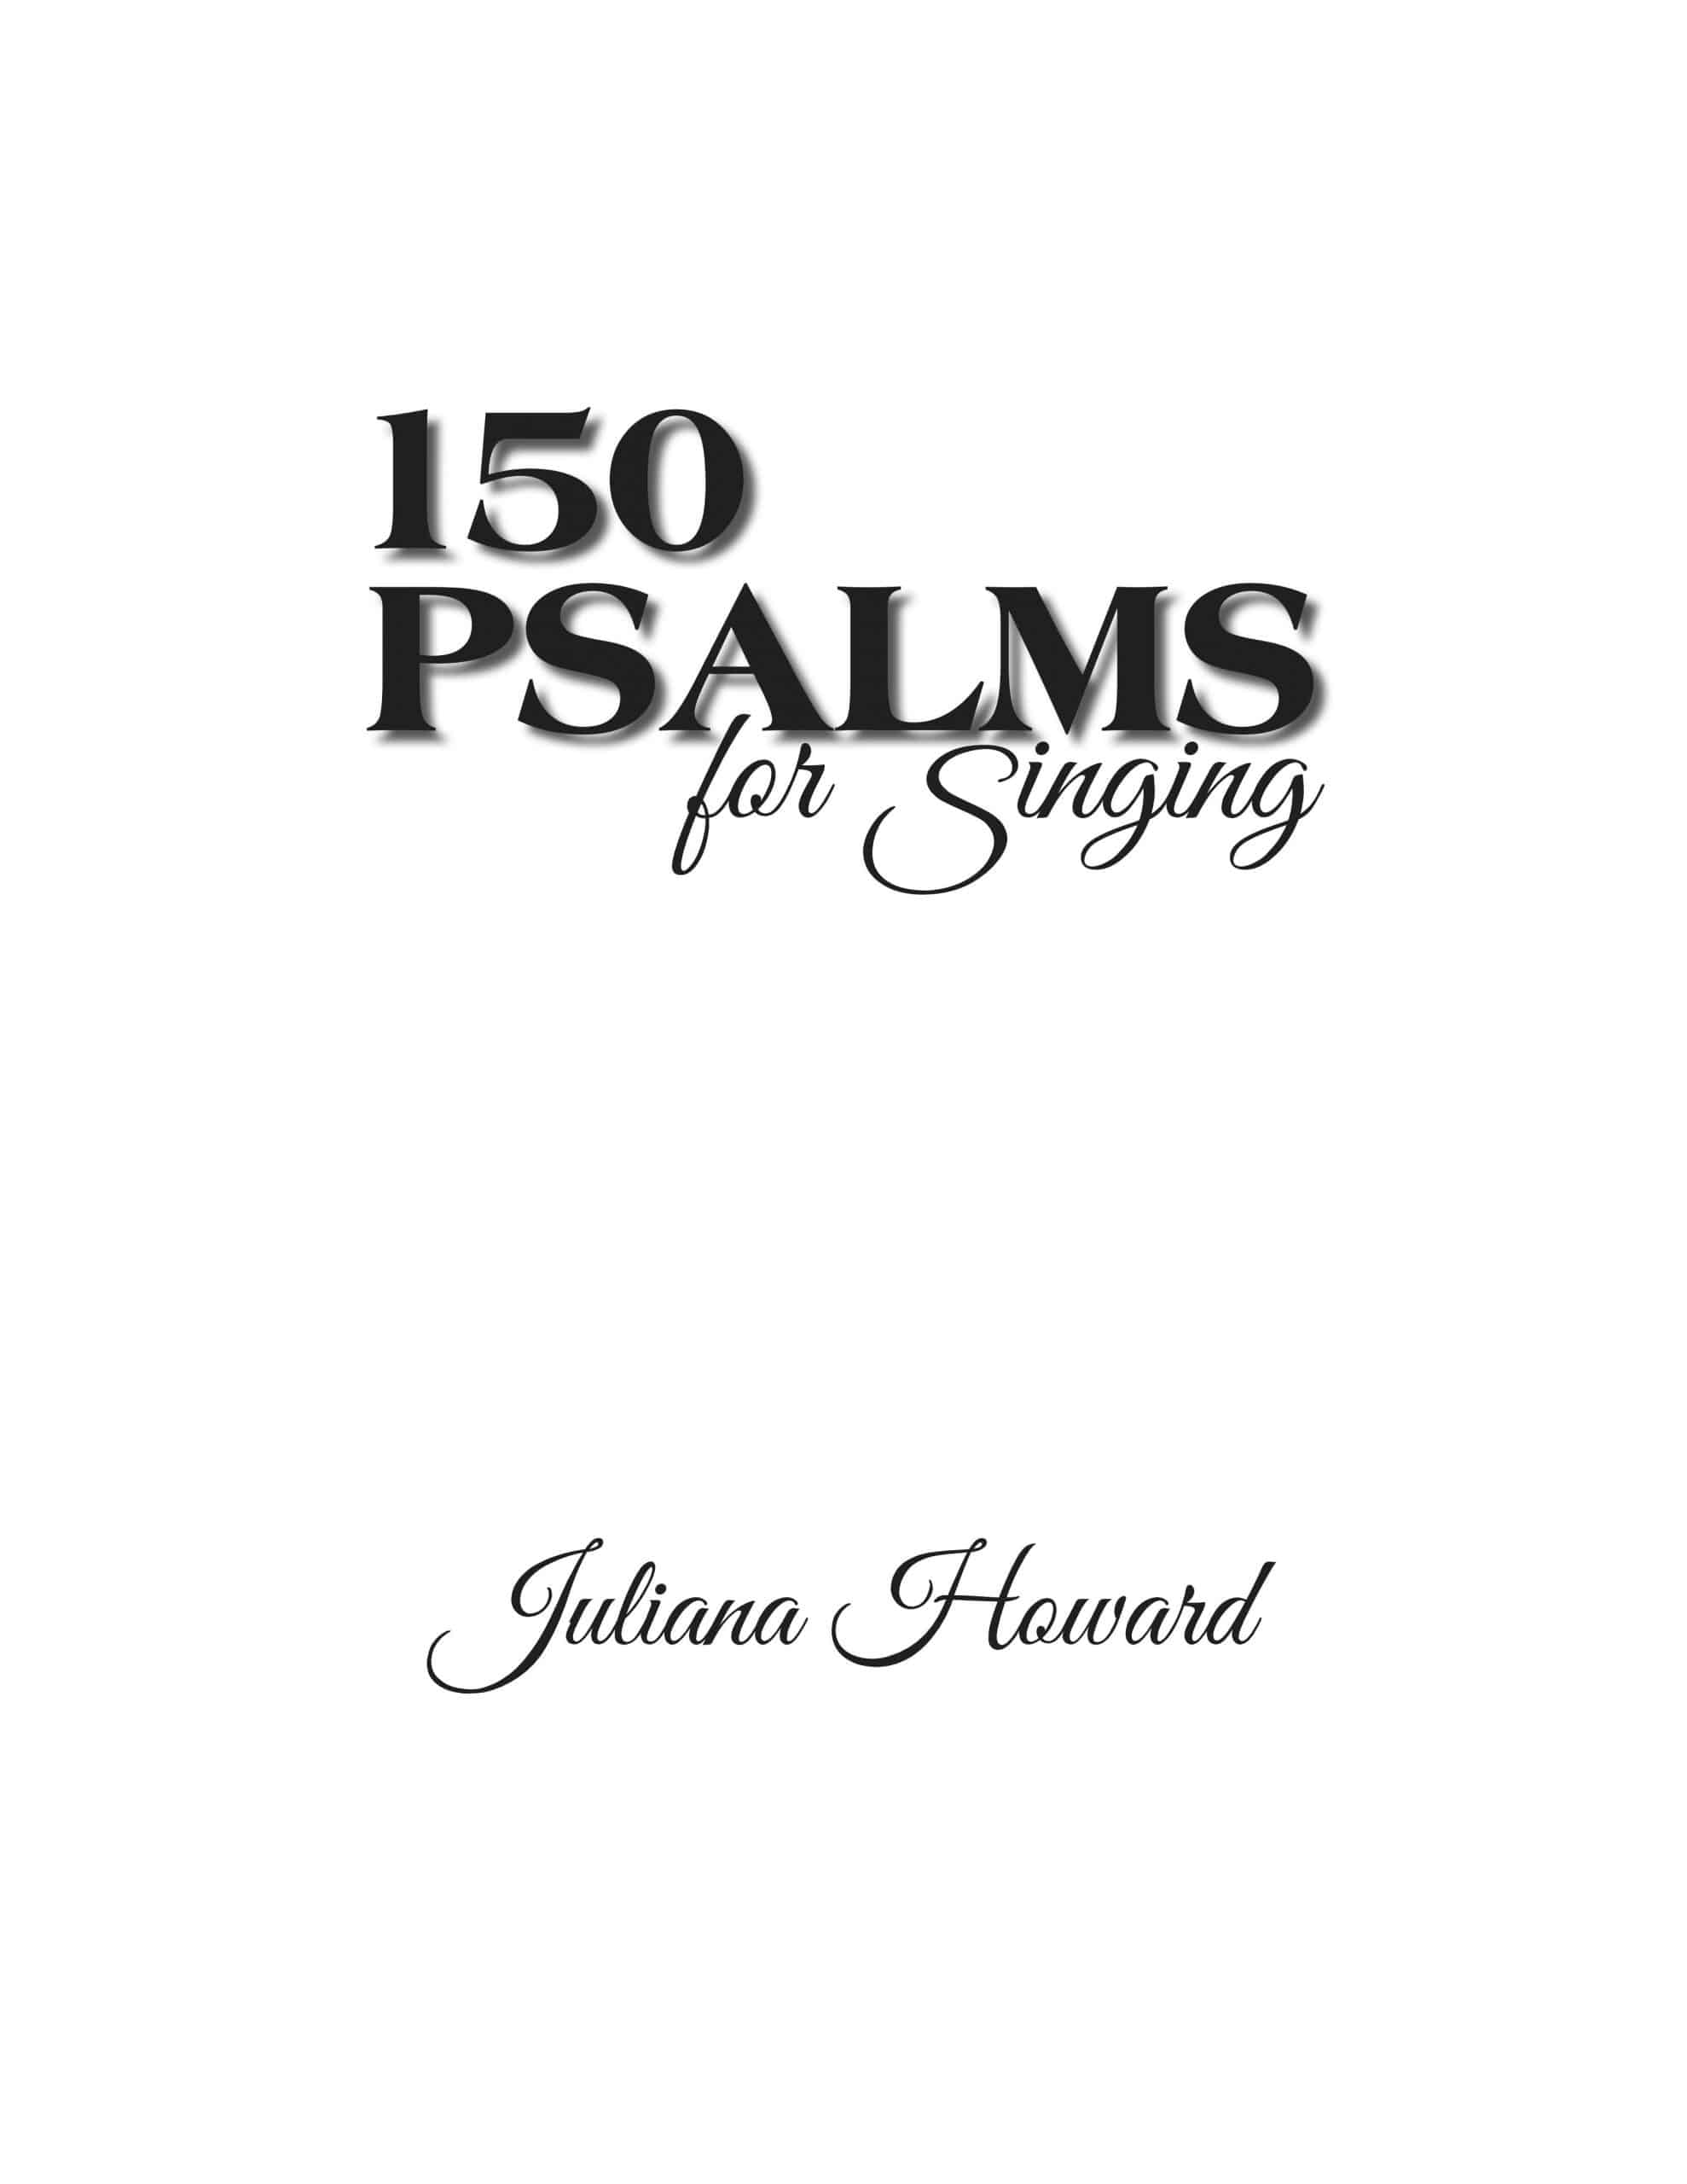 150 Psalms Sample scaled